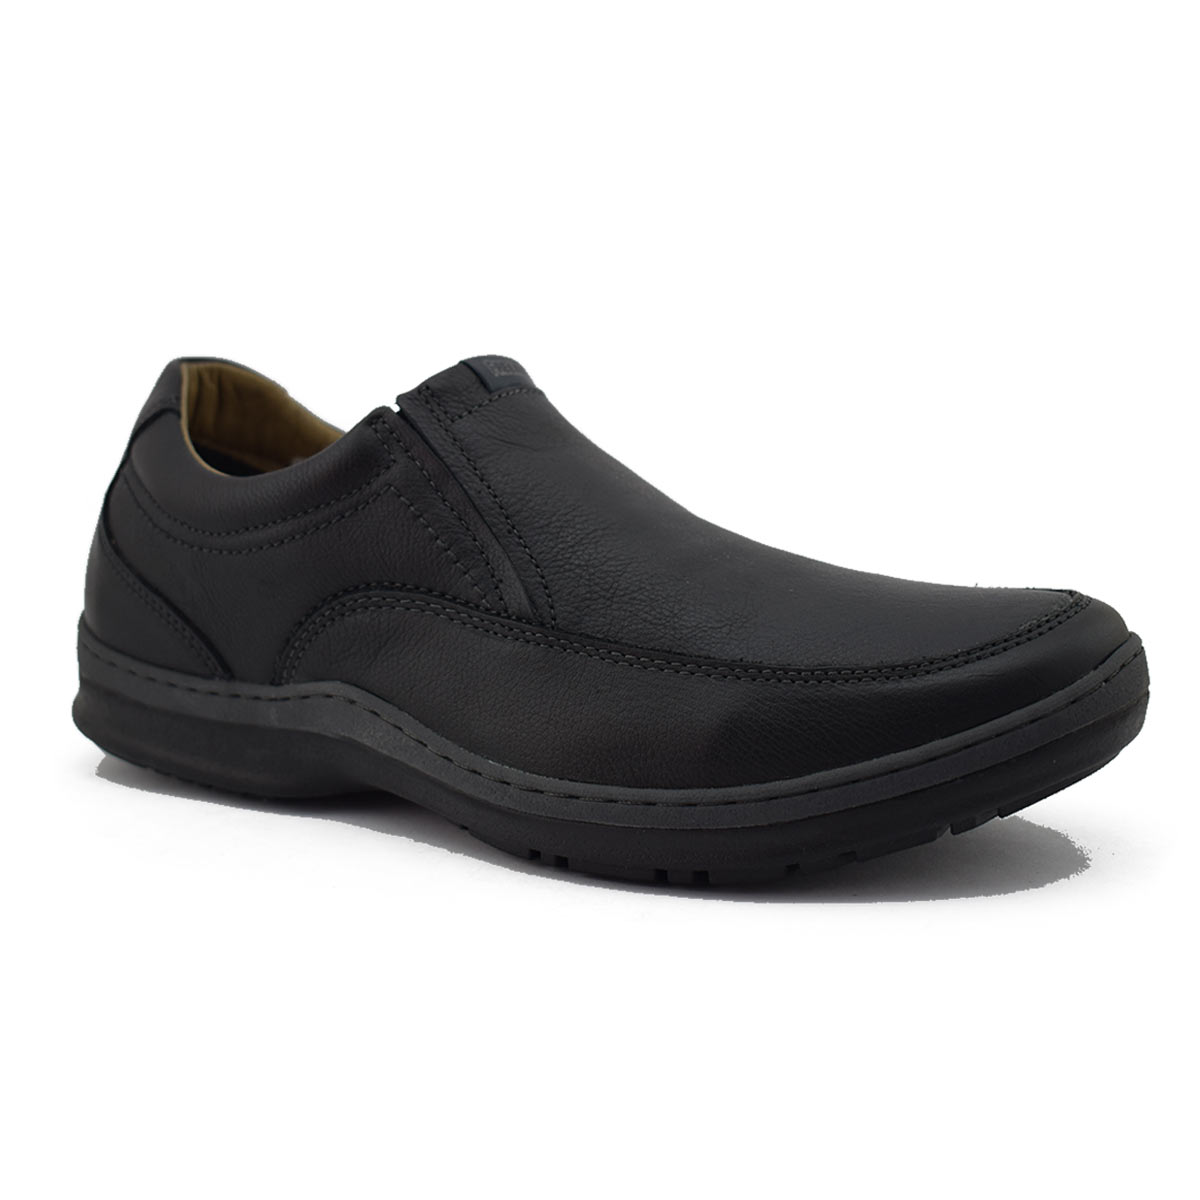 b82a4eacf94a1 super-confort-zapatos-hombres-dino-butelli